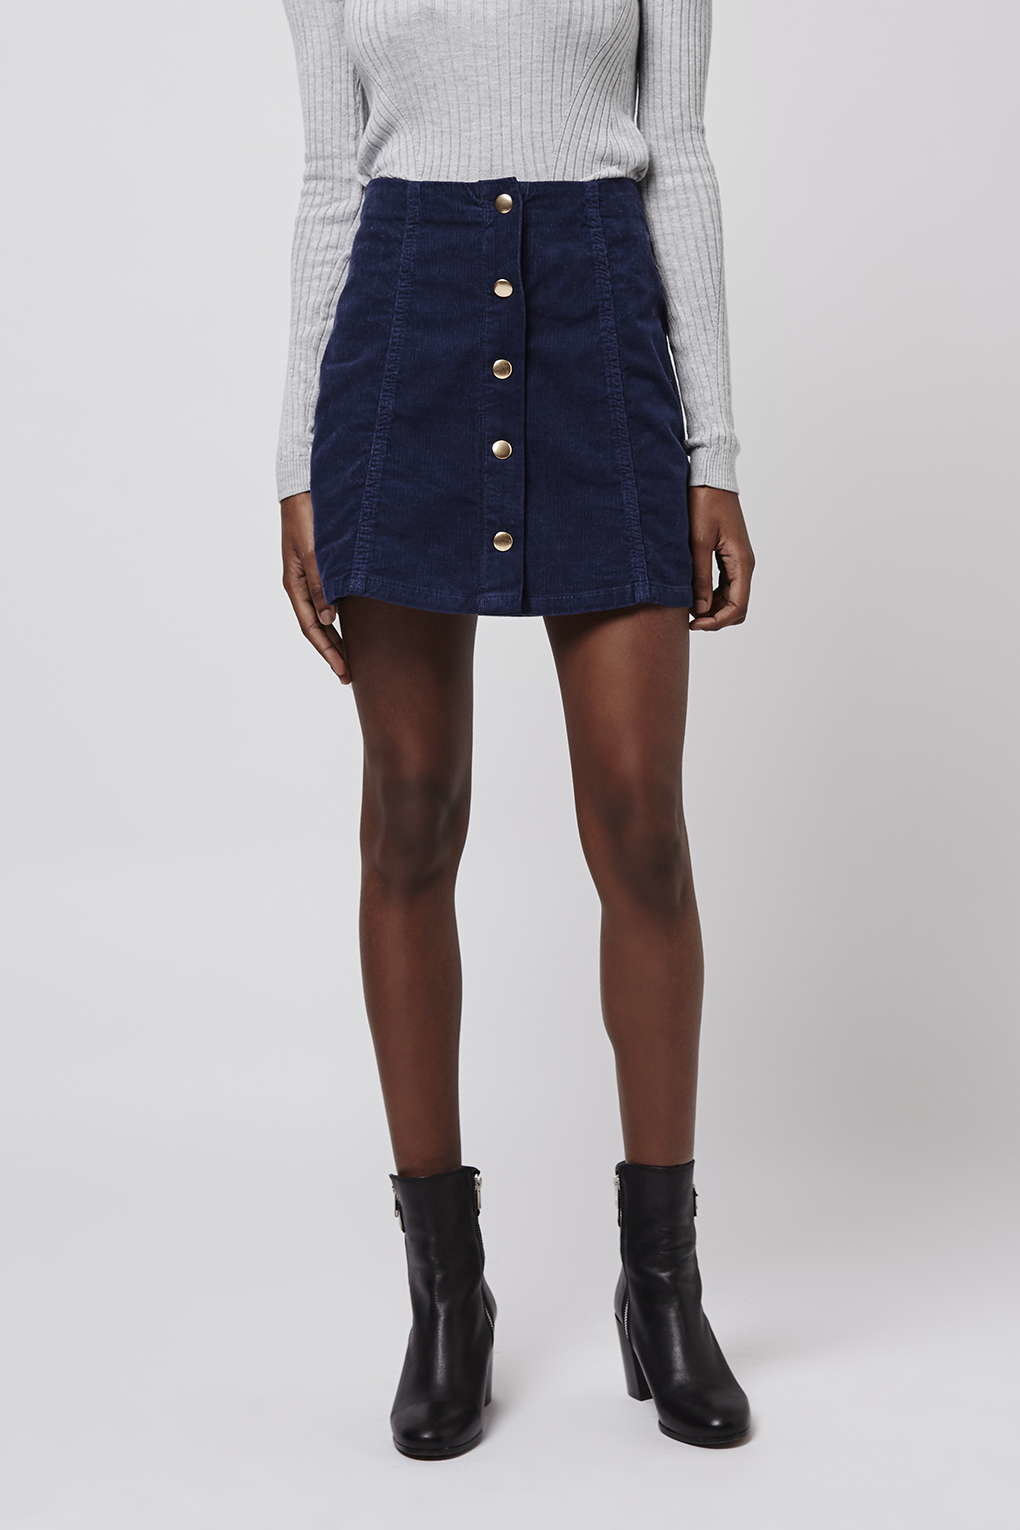 Topshop Cord Popper A-line Skirt in Blue | Lyst